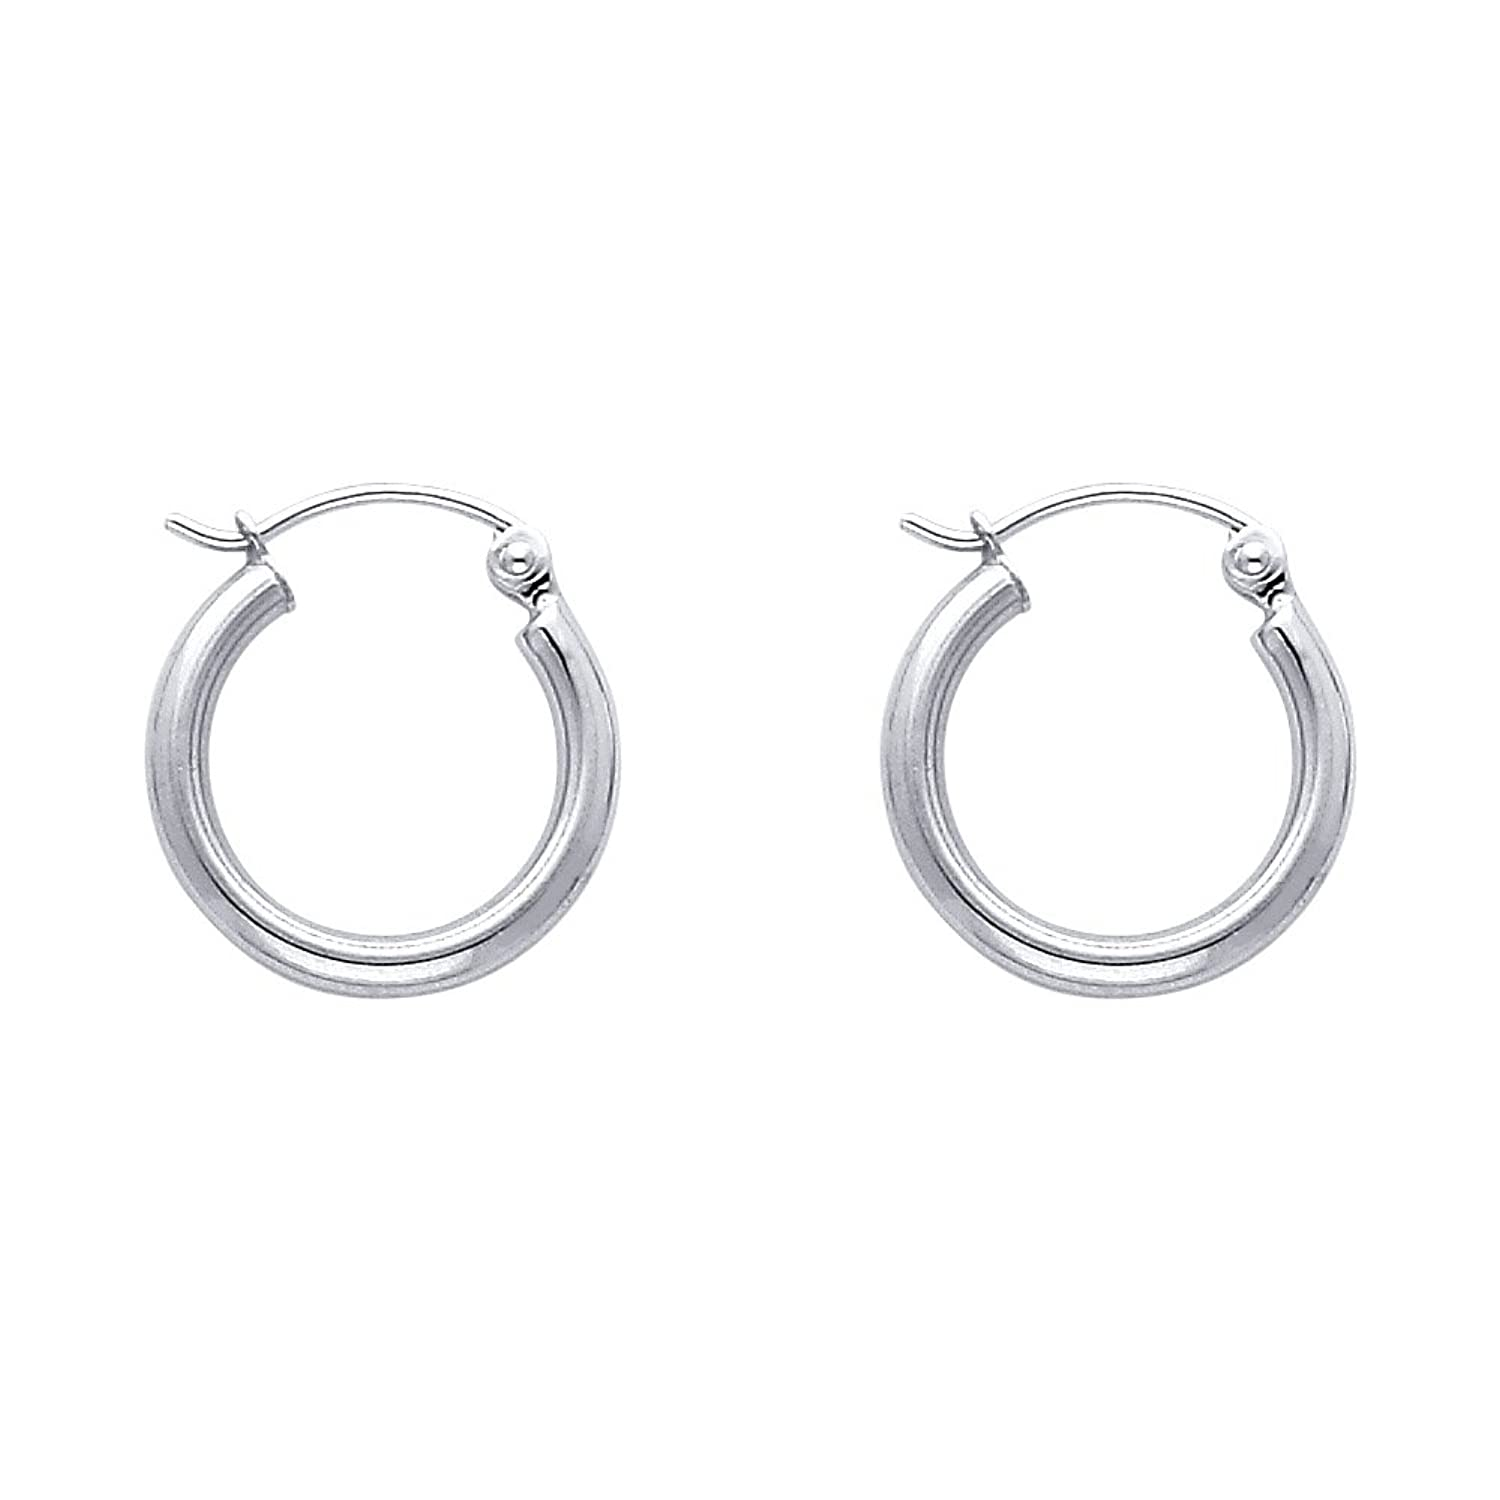 14K White Gold 16mm Tube Hoop Earrings with Click Top Backings